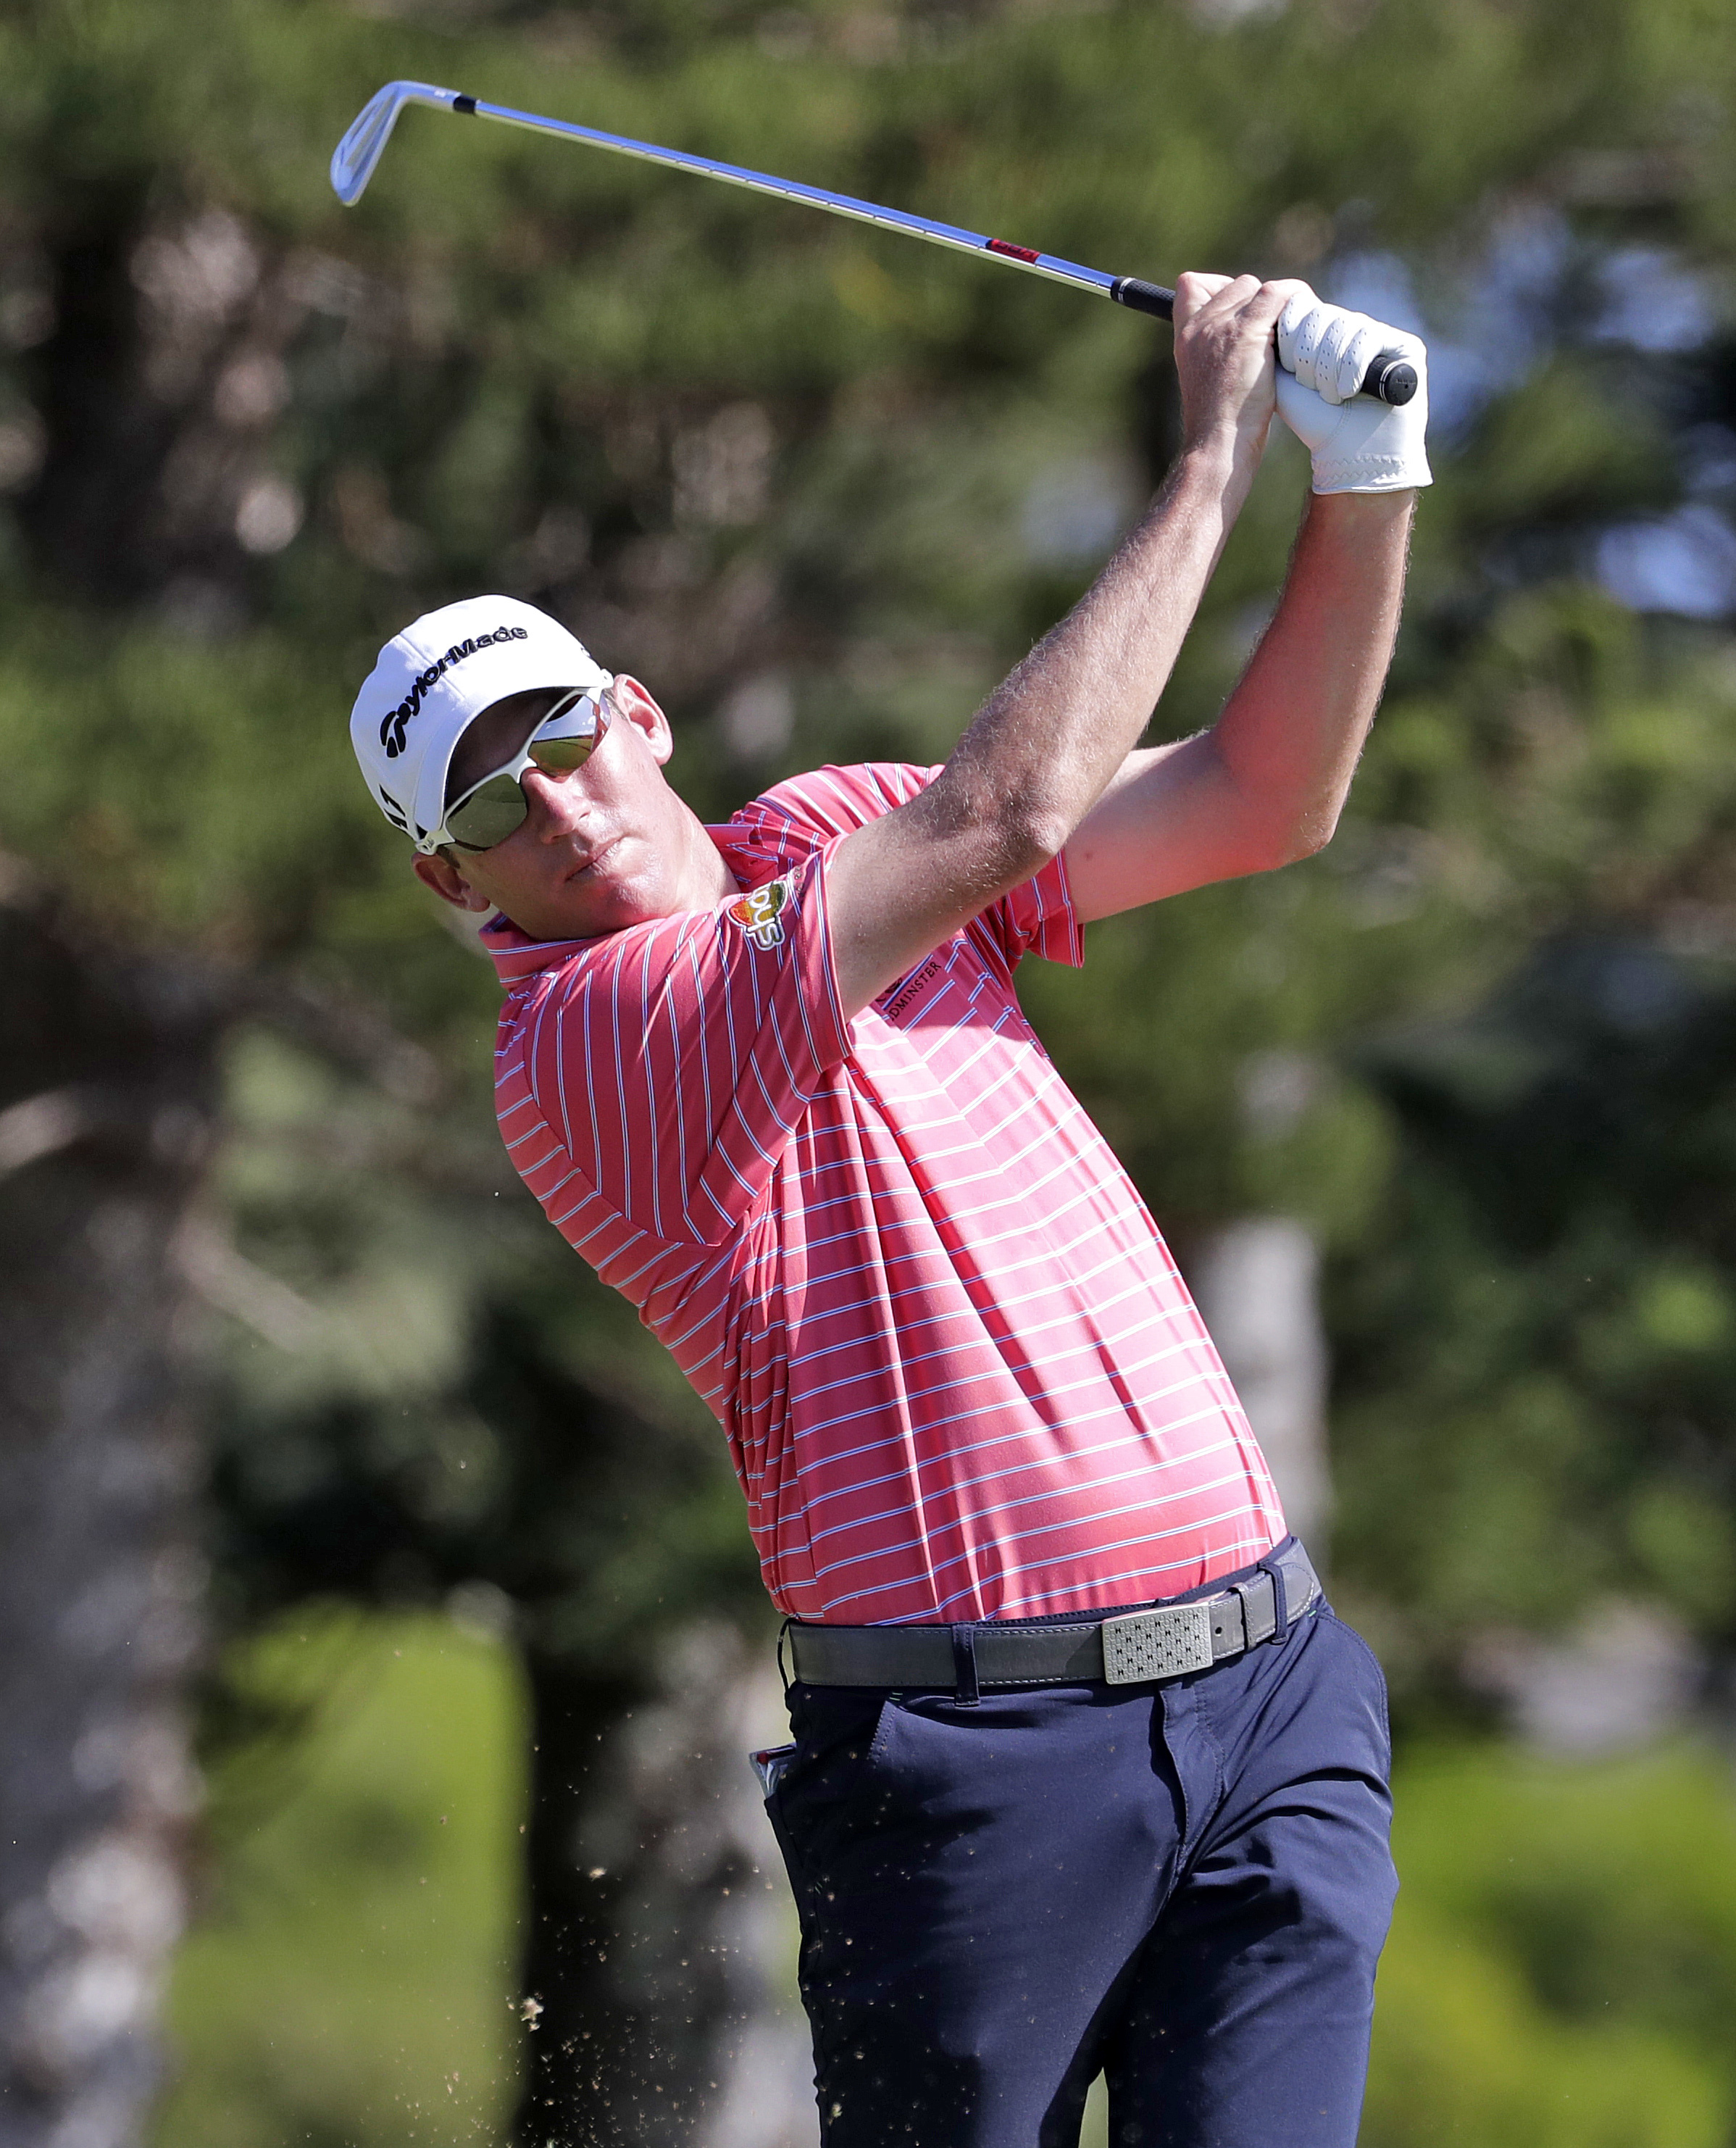 Jim Herman hits from the second tee during the first round of the Tournament of Champions golf event, Thursday, Jan. 5, 2017, at Kapalua Plantation Course in Kapalua, Hawaii. (AP Photo/Matt York)